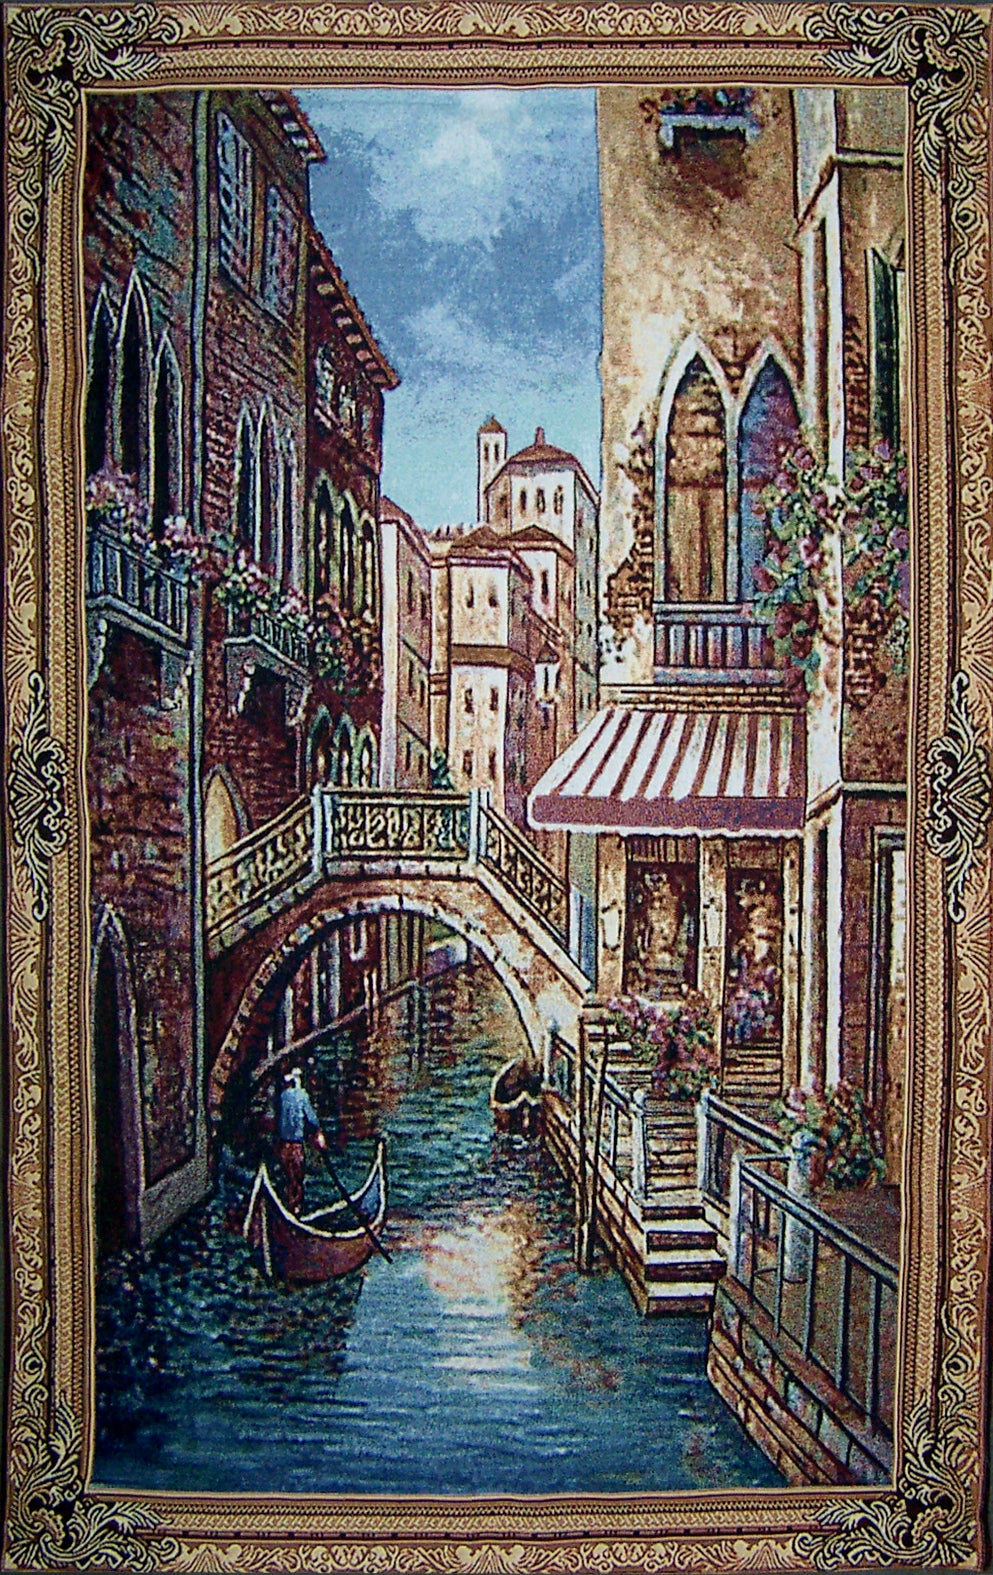 "WH-VENEICE | VENICE CANAL 34 X 55 "" INCH WALL HANGING TAPESTRY ART - www.signareusa.com"